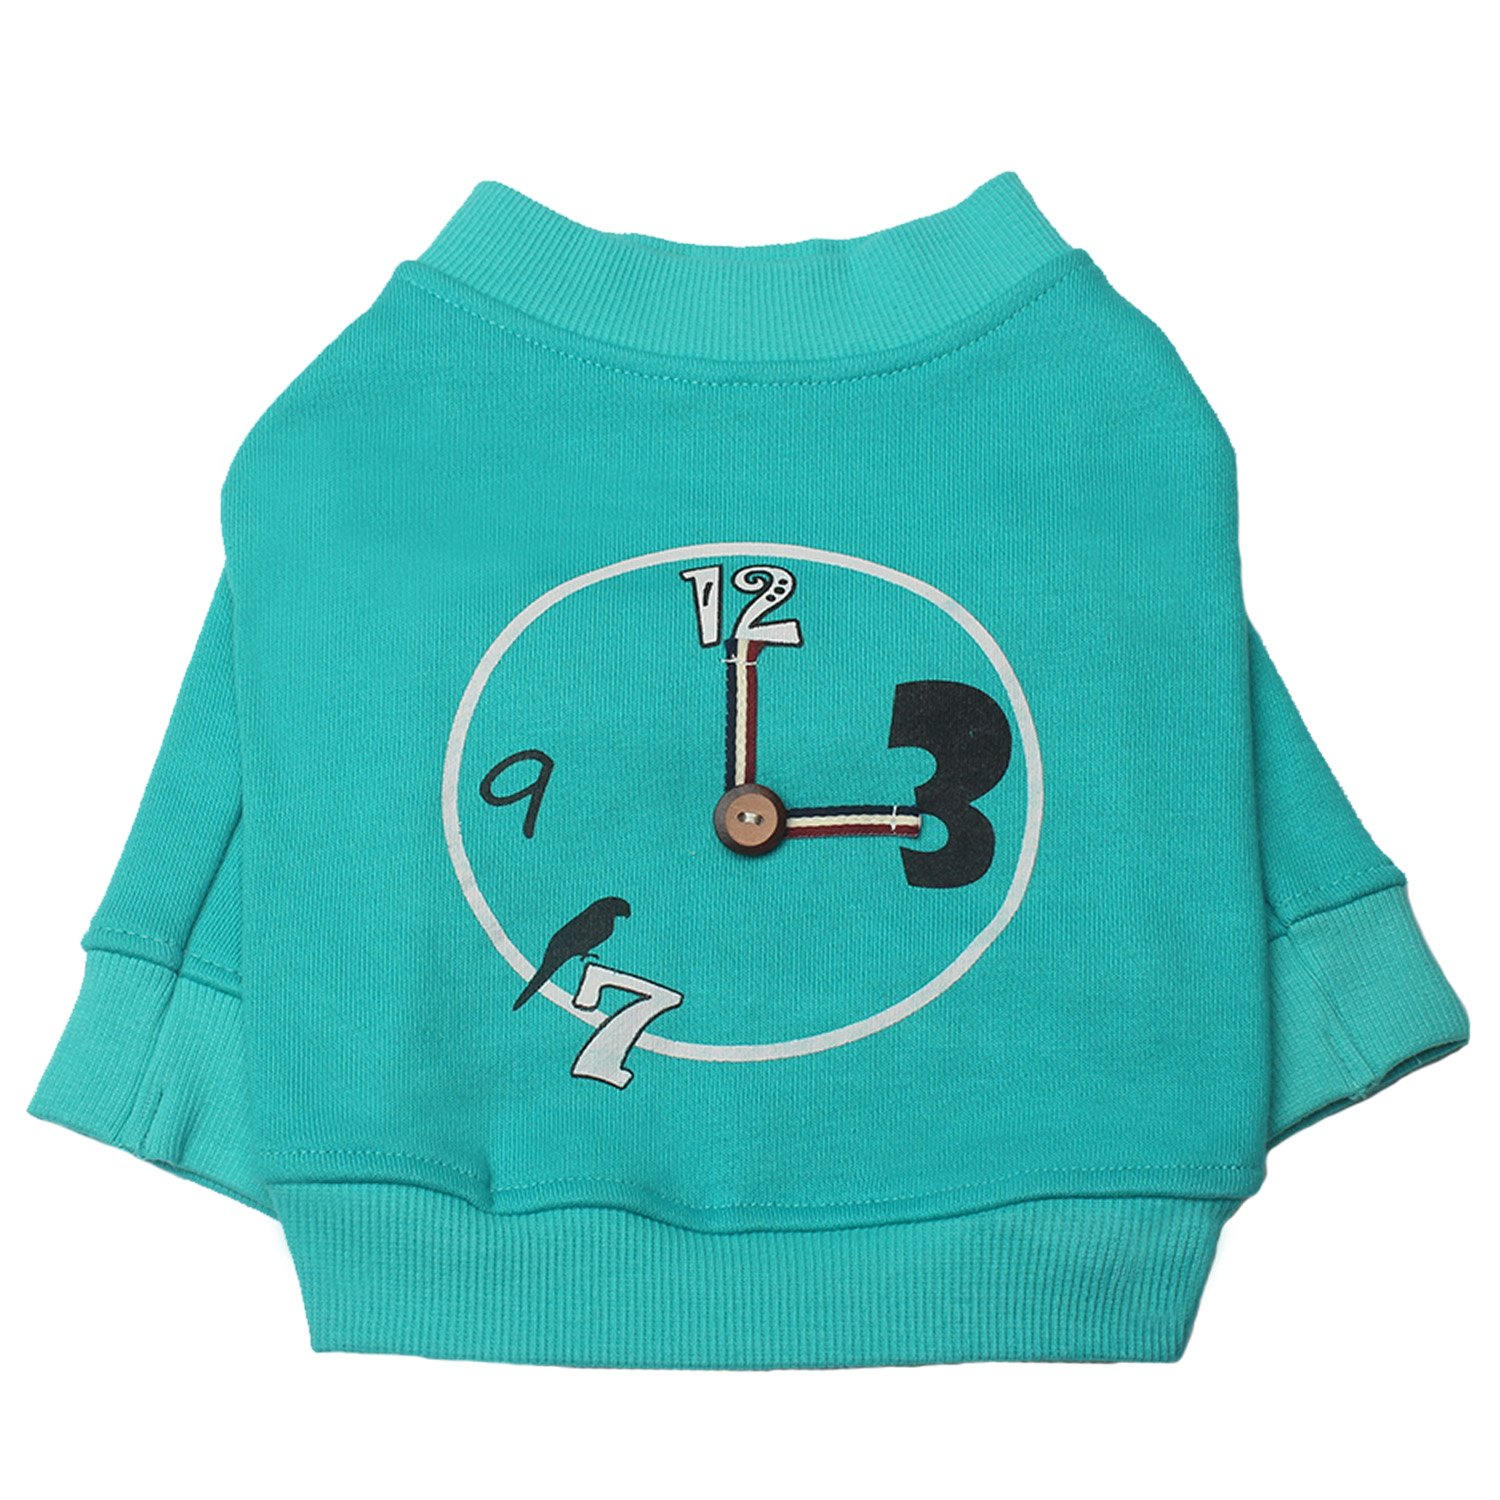 TONY HOBY Clock Dog Hoodies Basic Elbow Sleeve Dog Sweater Cotton Made Pet Clothes for Small Dogs